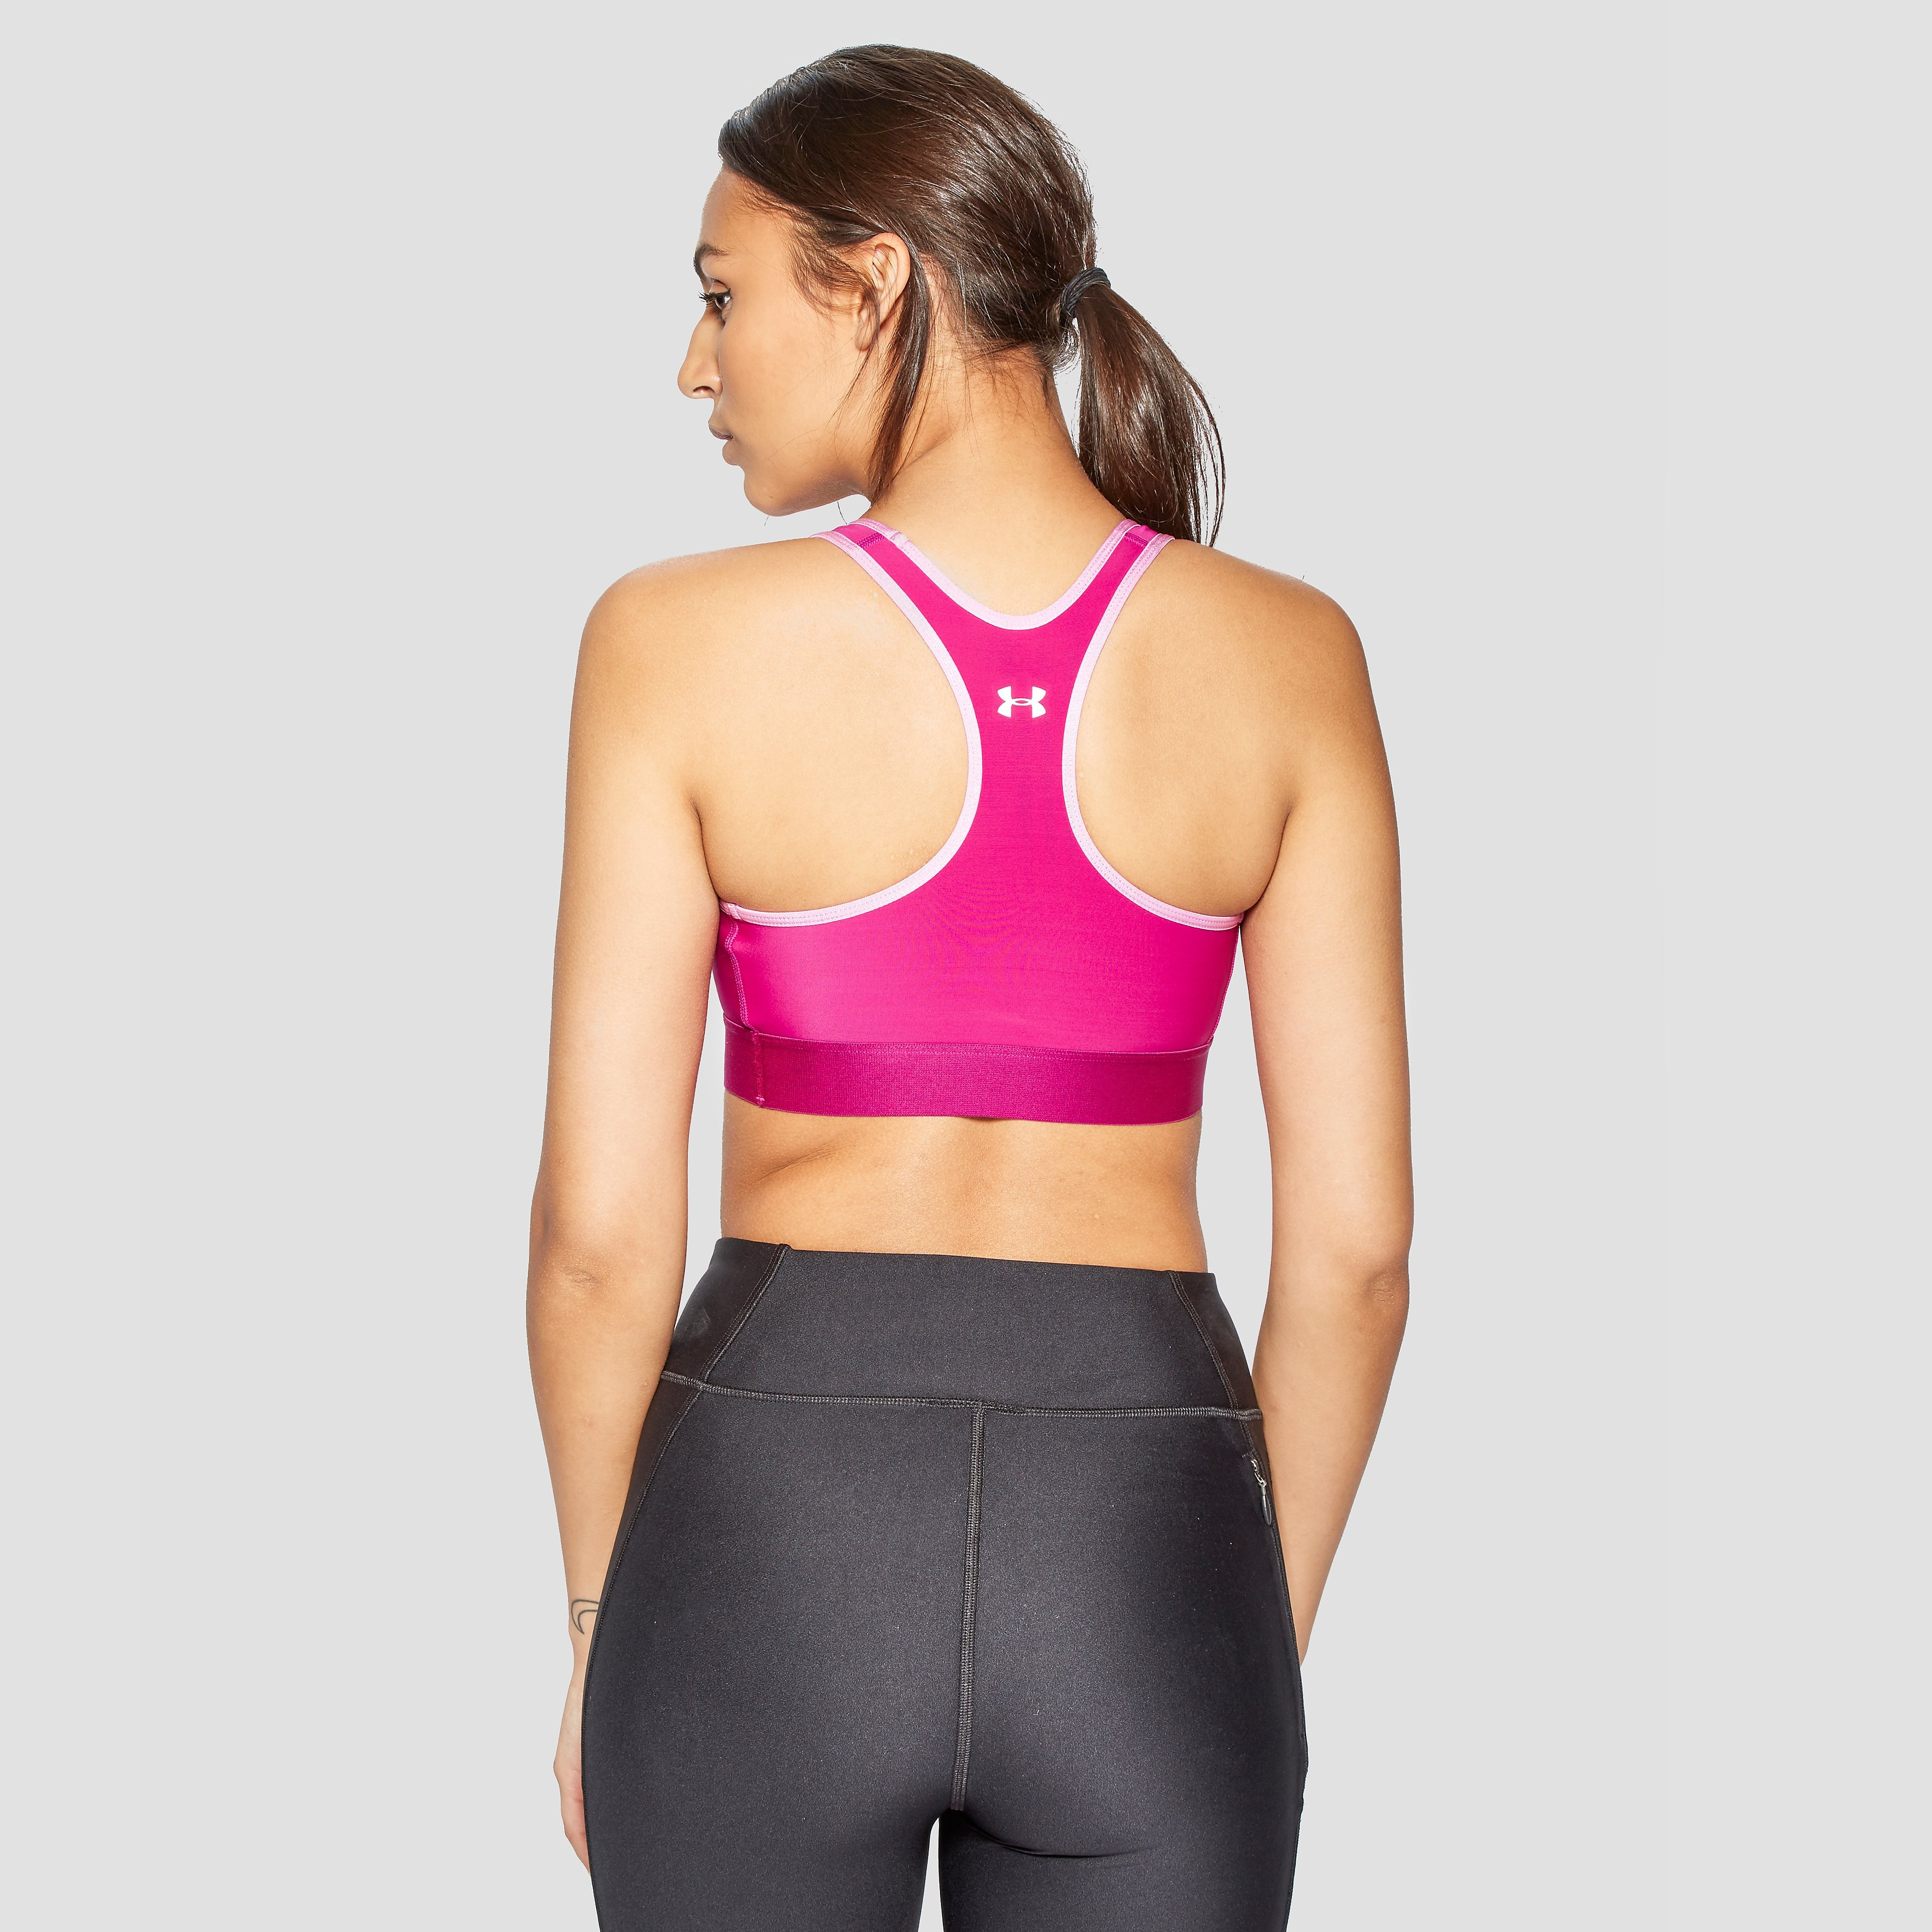 Under Armour Mid Women's Sports Bra